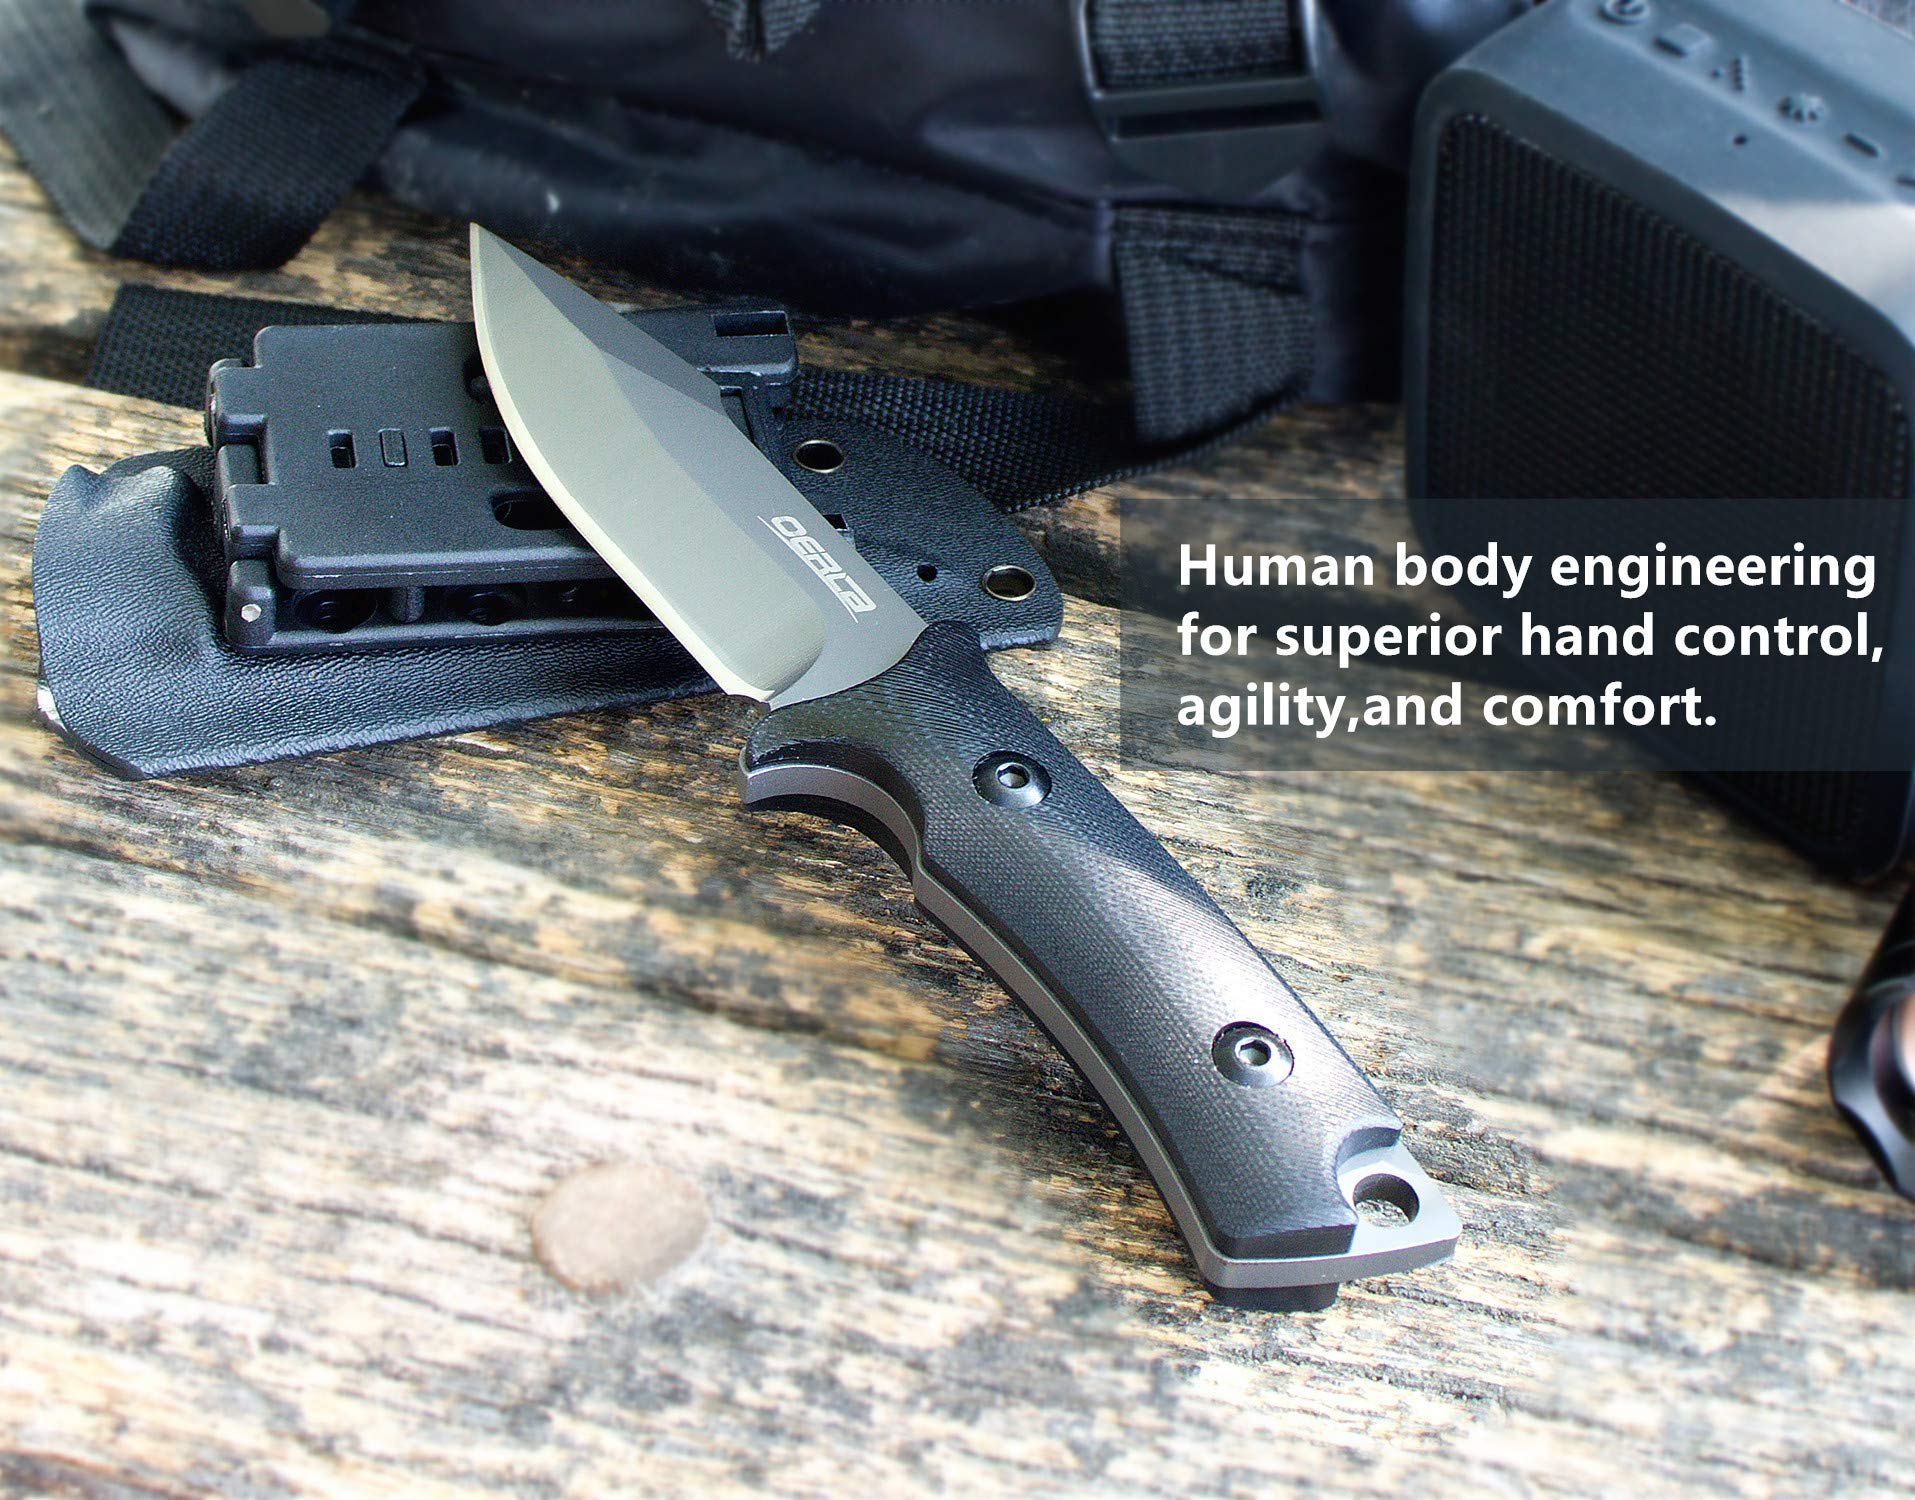 Oerla TAC OLF-1009 Fixed Blade Outdoor Duty Knife 420HC Stainless Steel Field Knife Camping Knife with G10 Handle Waist Clip EDC Kydex Sheath (Black) by Oerla (Image #5)